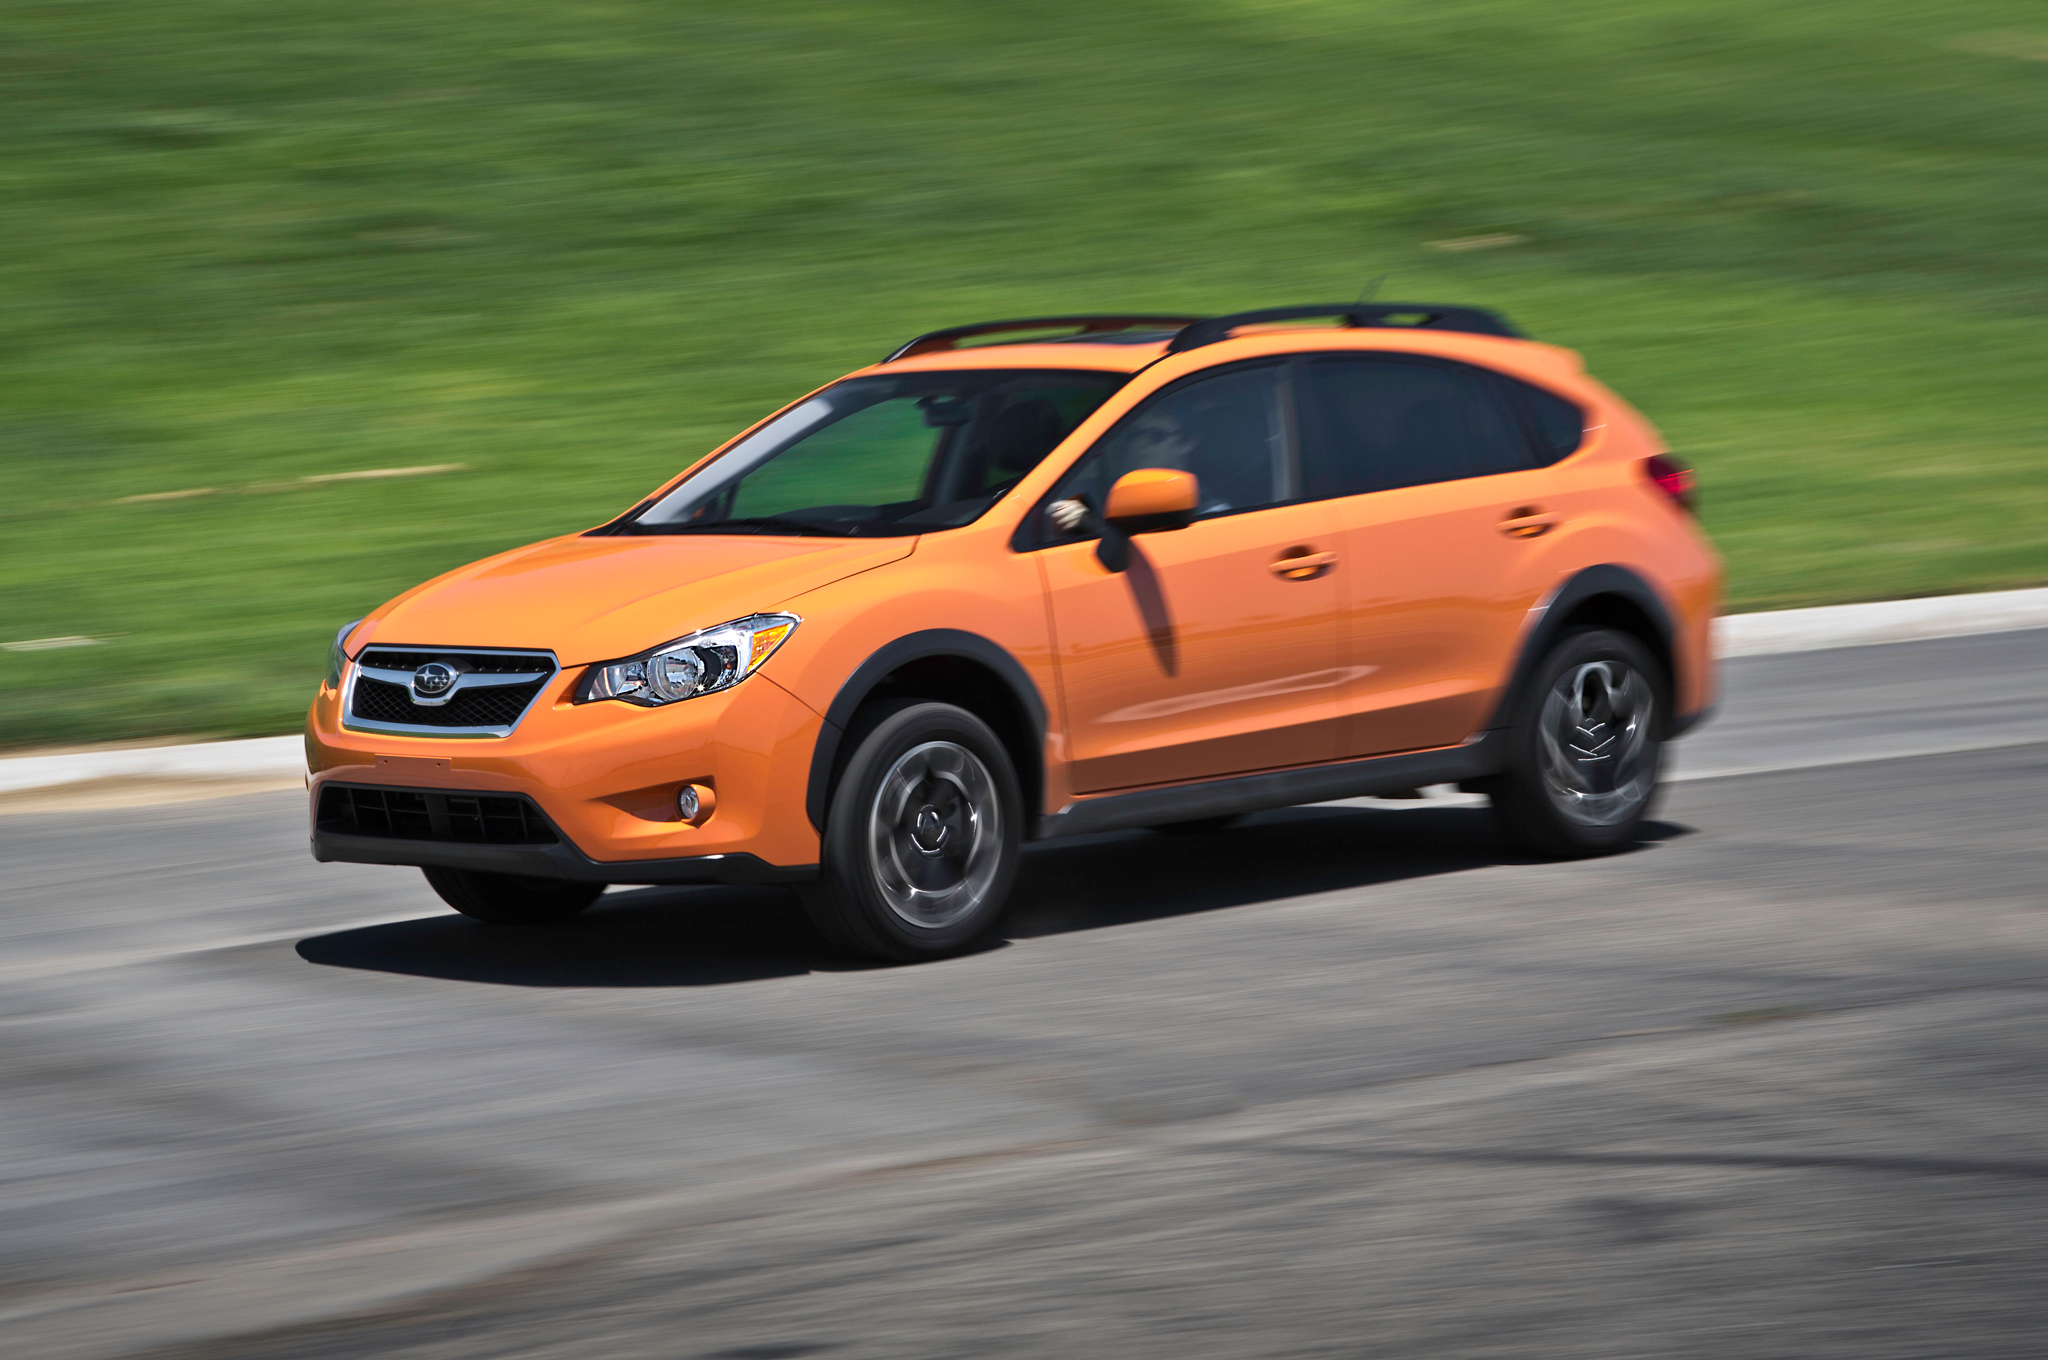 2014 Subaru Xv Crosstrek 2 0i Limited >> 2013 Subaru Xv Crosstrek 2 0i Limited First Test Motortrend